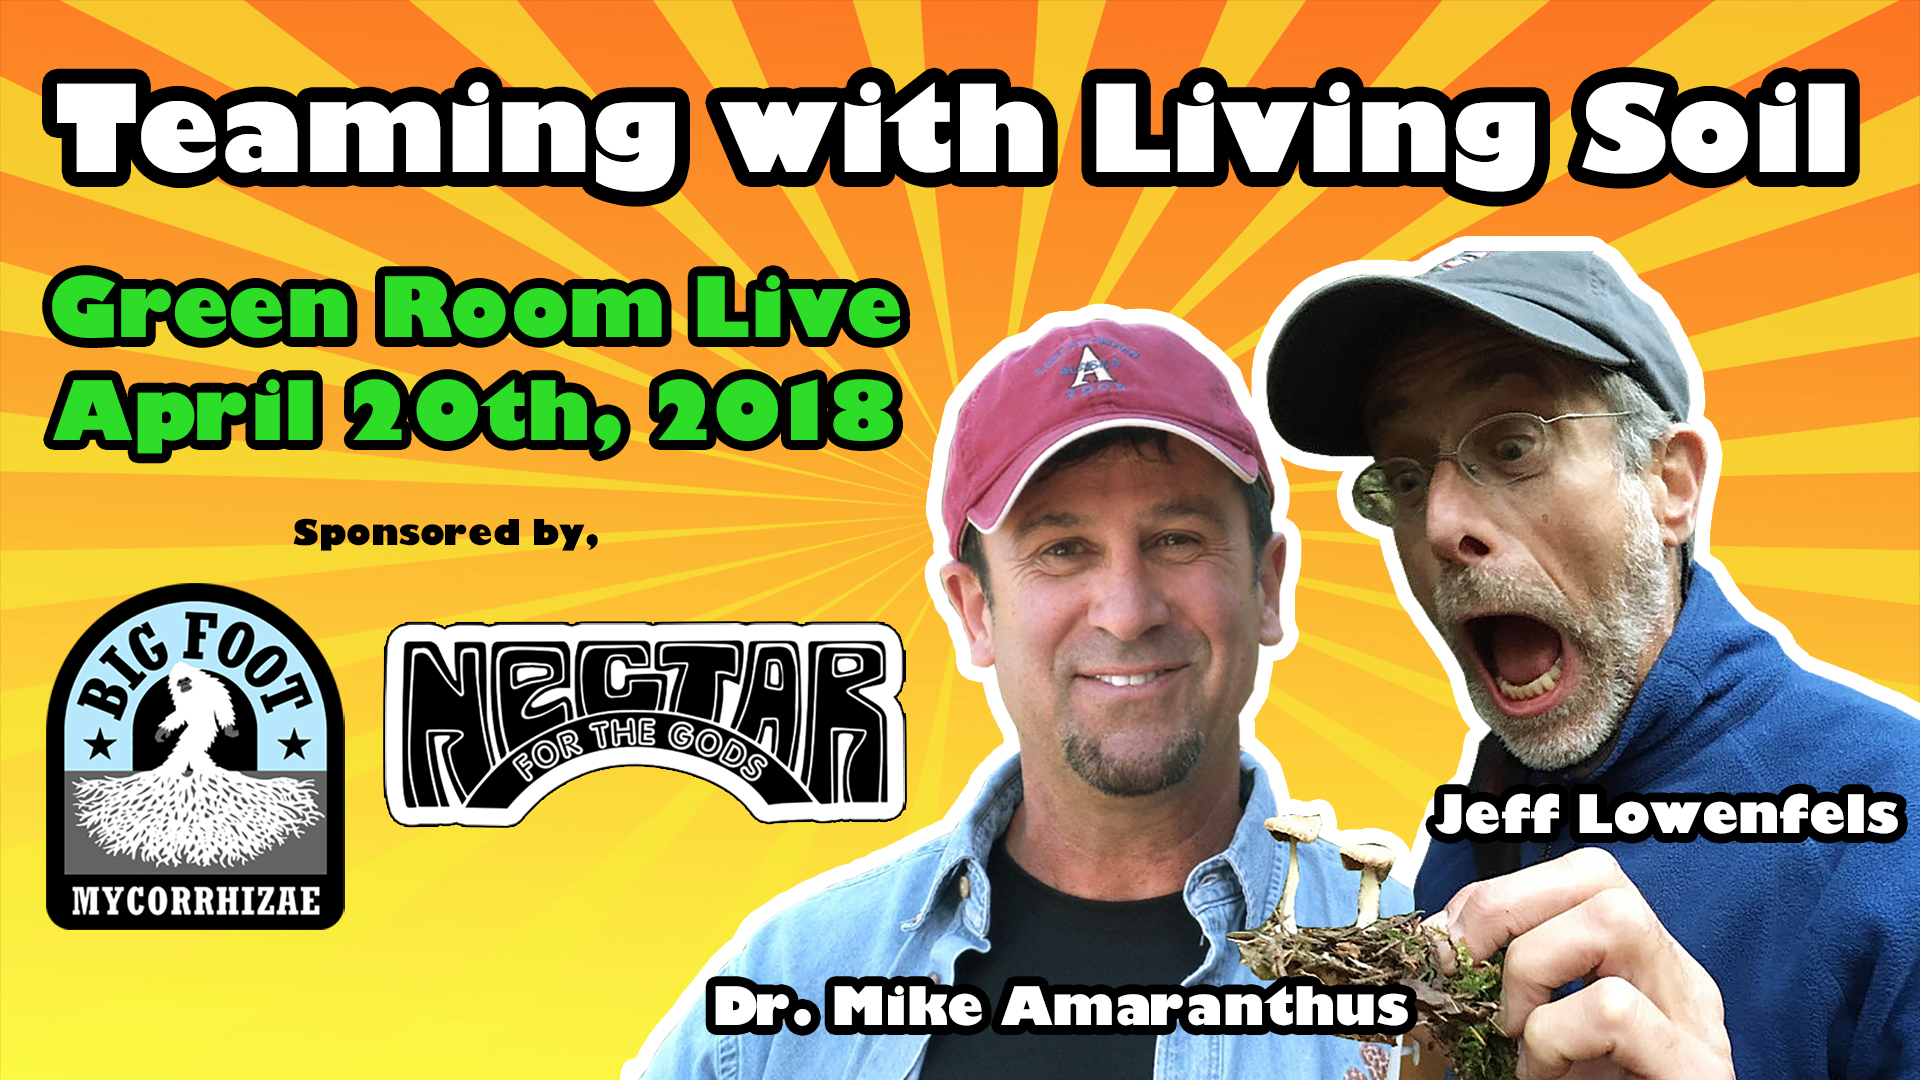 Green Room Live - Teaming with Living Soil - April 20th